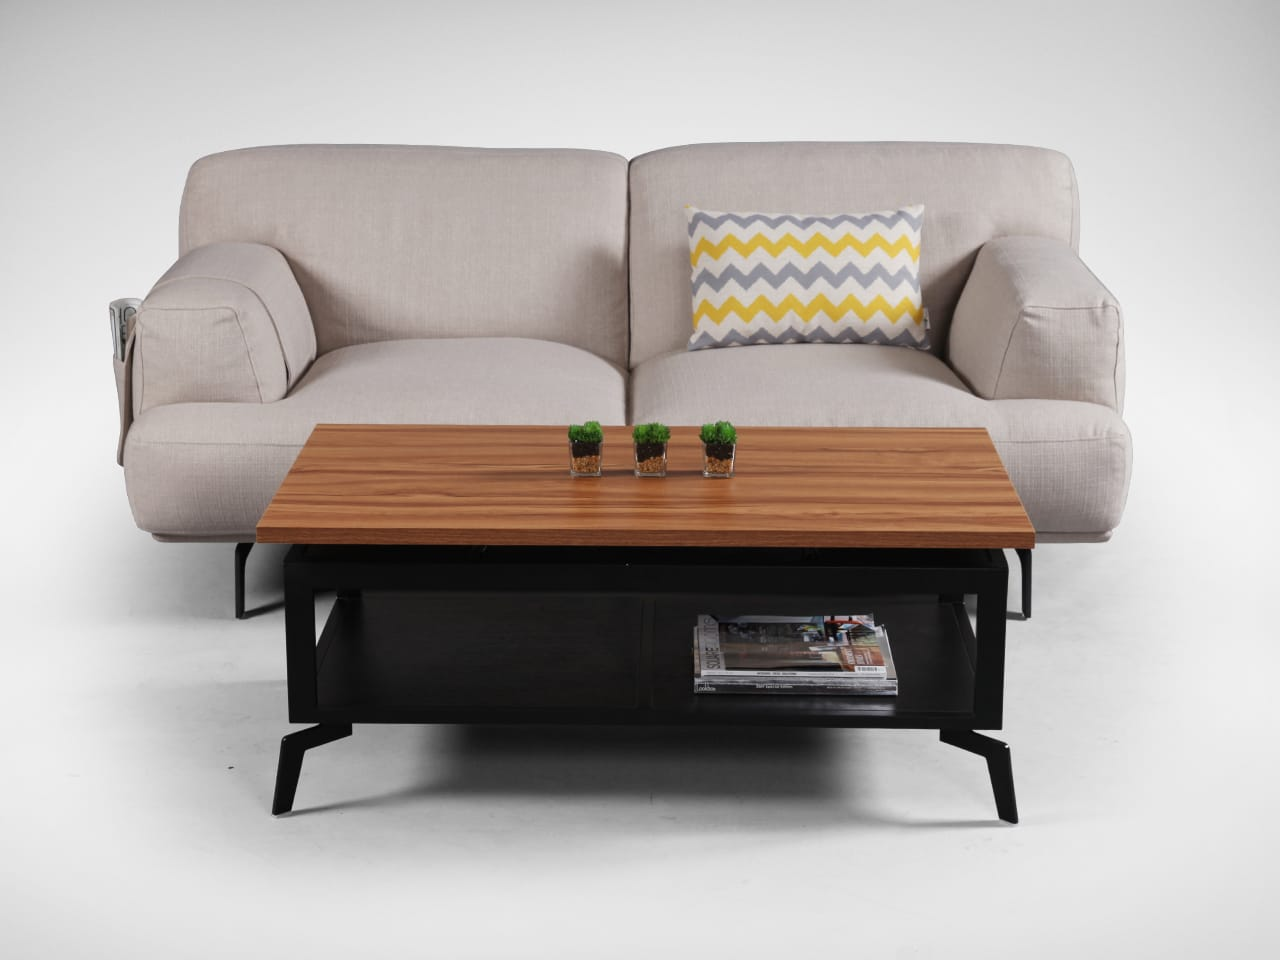 Elegant Coffee Table that Pulls Up to Couch